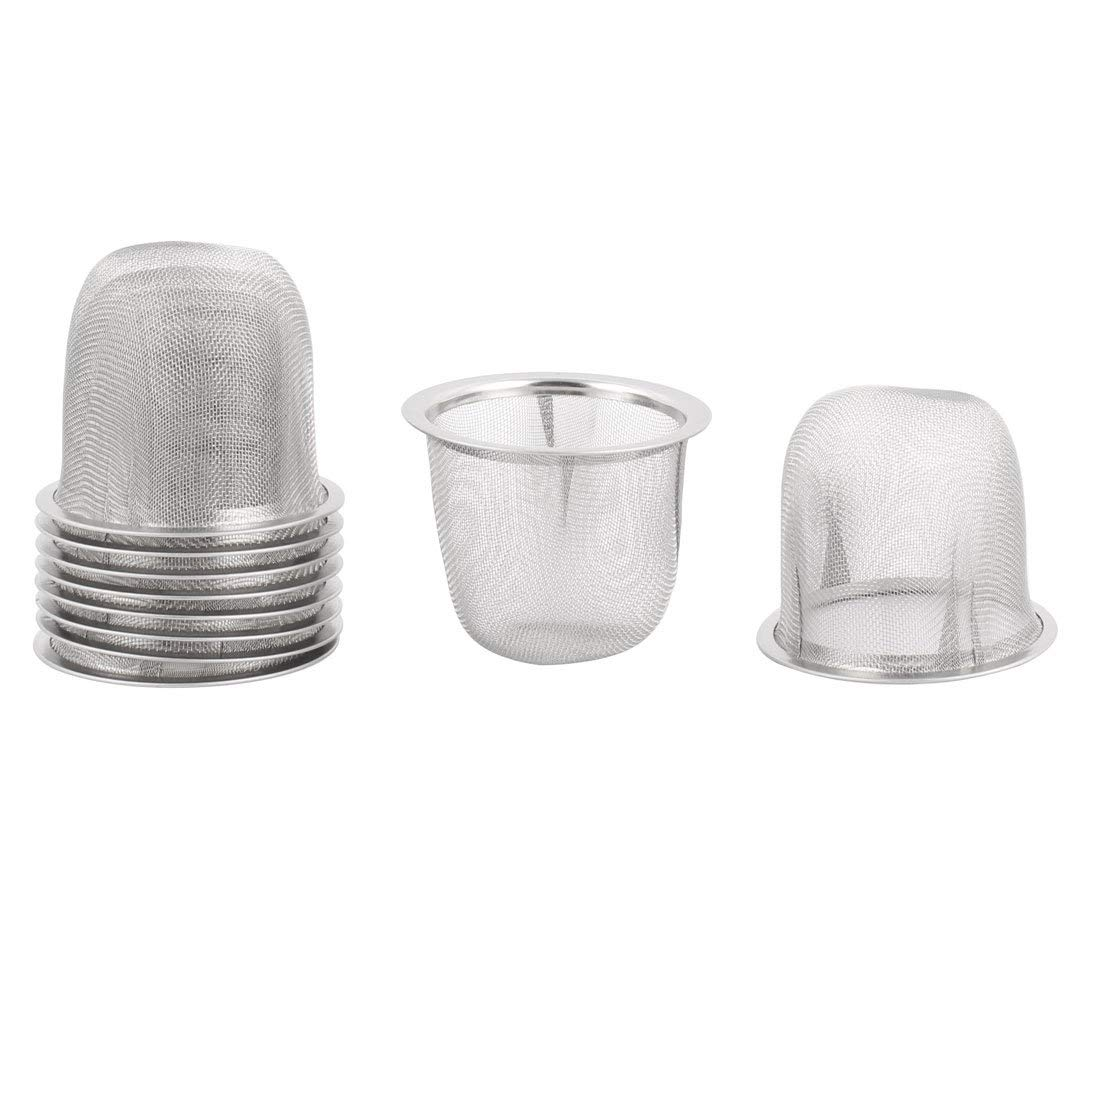 uxcell Stainless Steel Tea Leaf Spice Round Wire Mesh Teapot Filter Strainer 60mm Dia 48mm Depth 10pcs